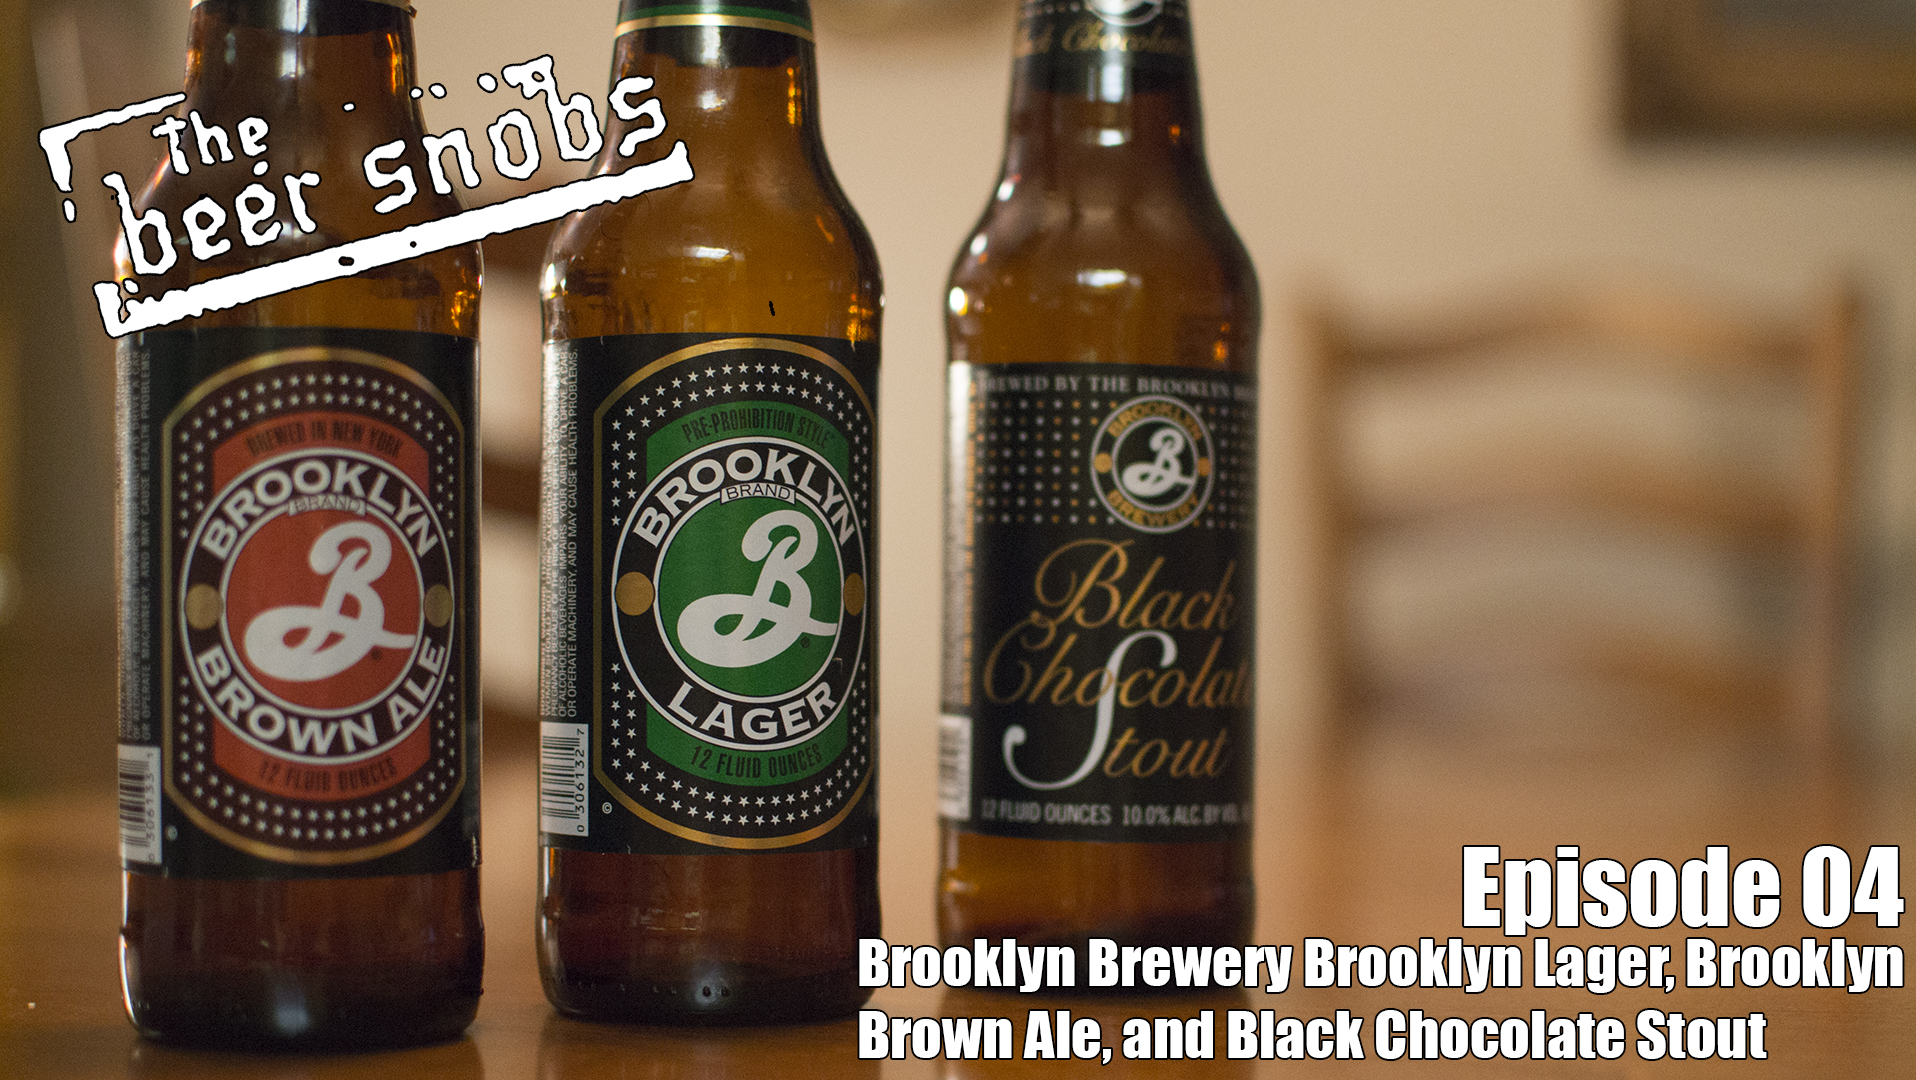 Brooklyn Brewery Brooklyn Lager, Brooklyn Brown Ale, and Black Chocolate Stout